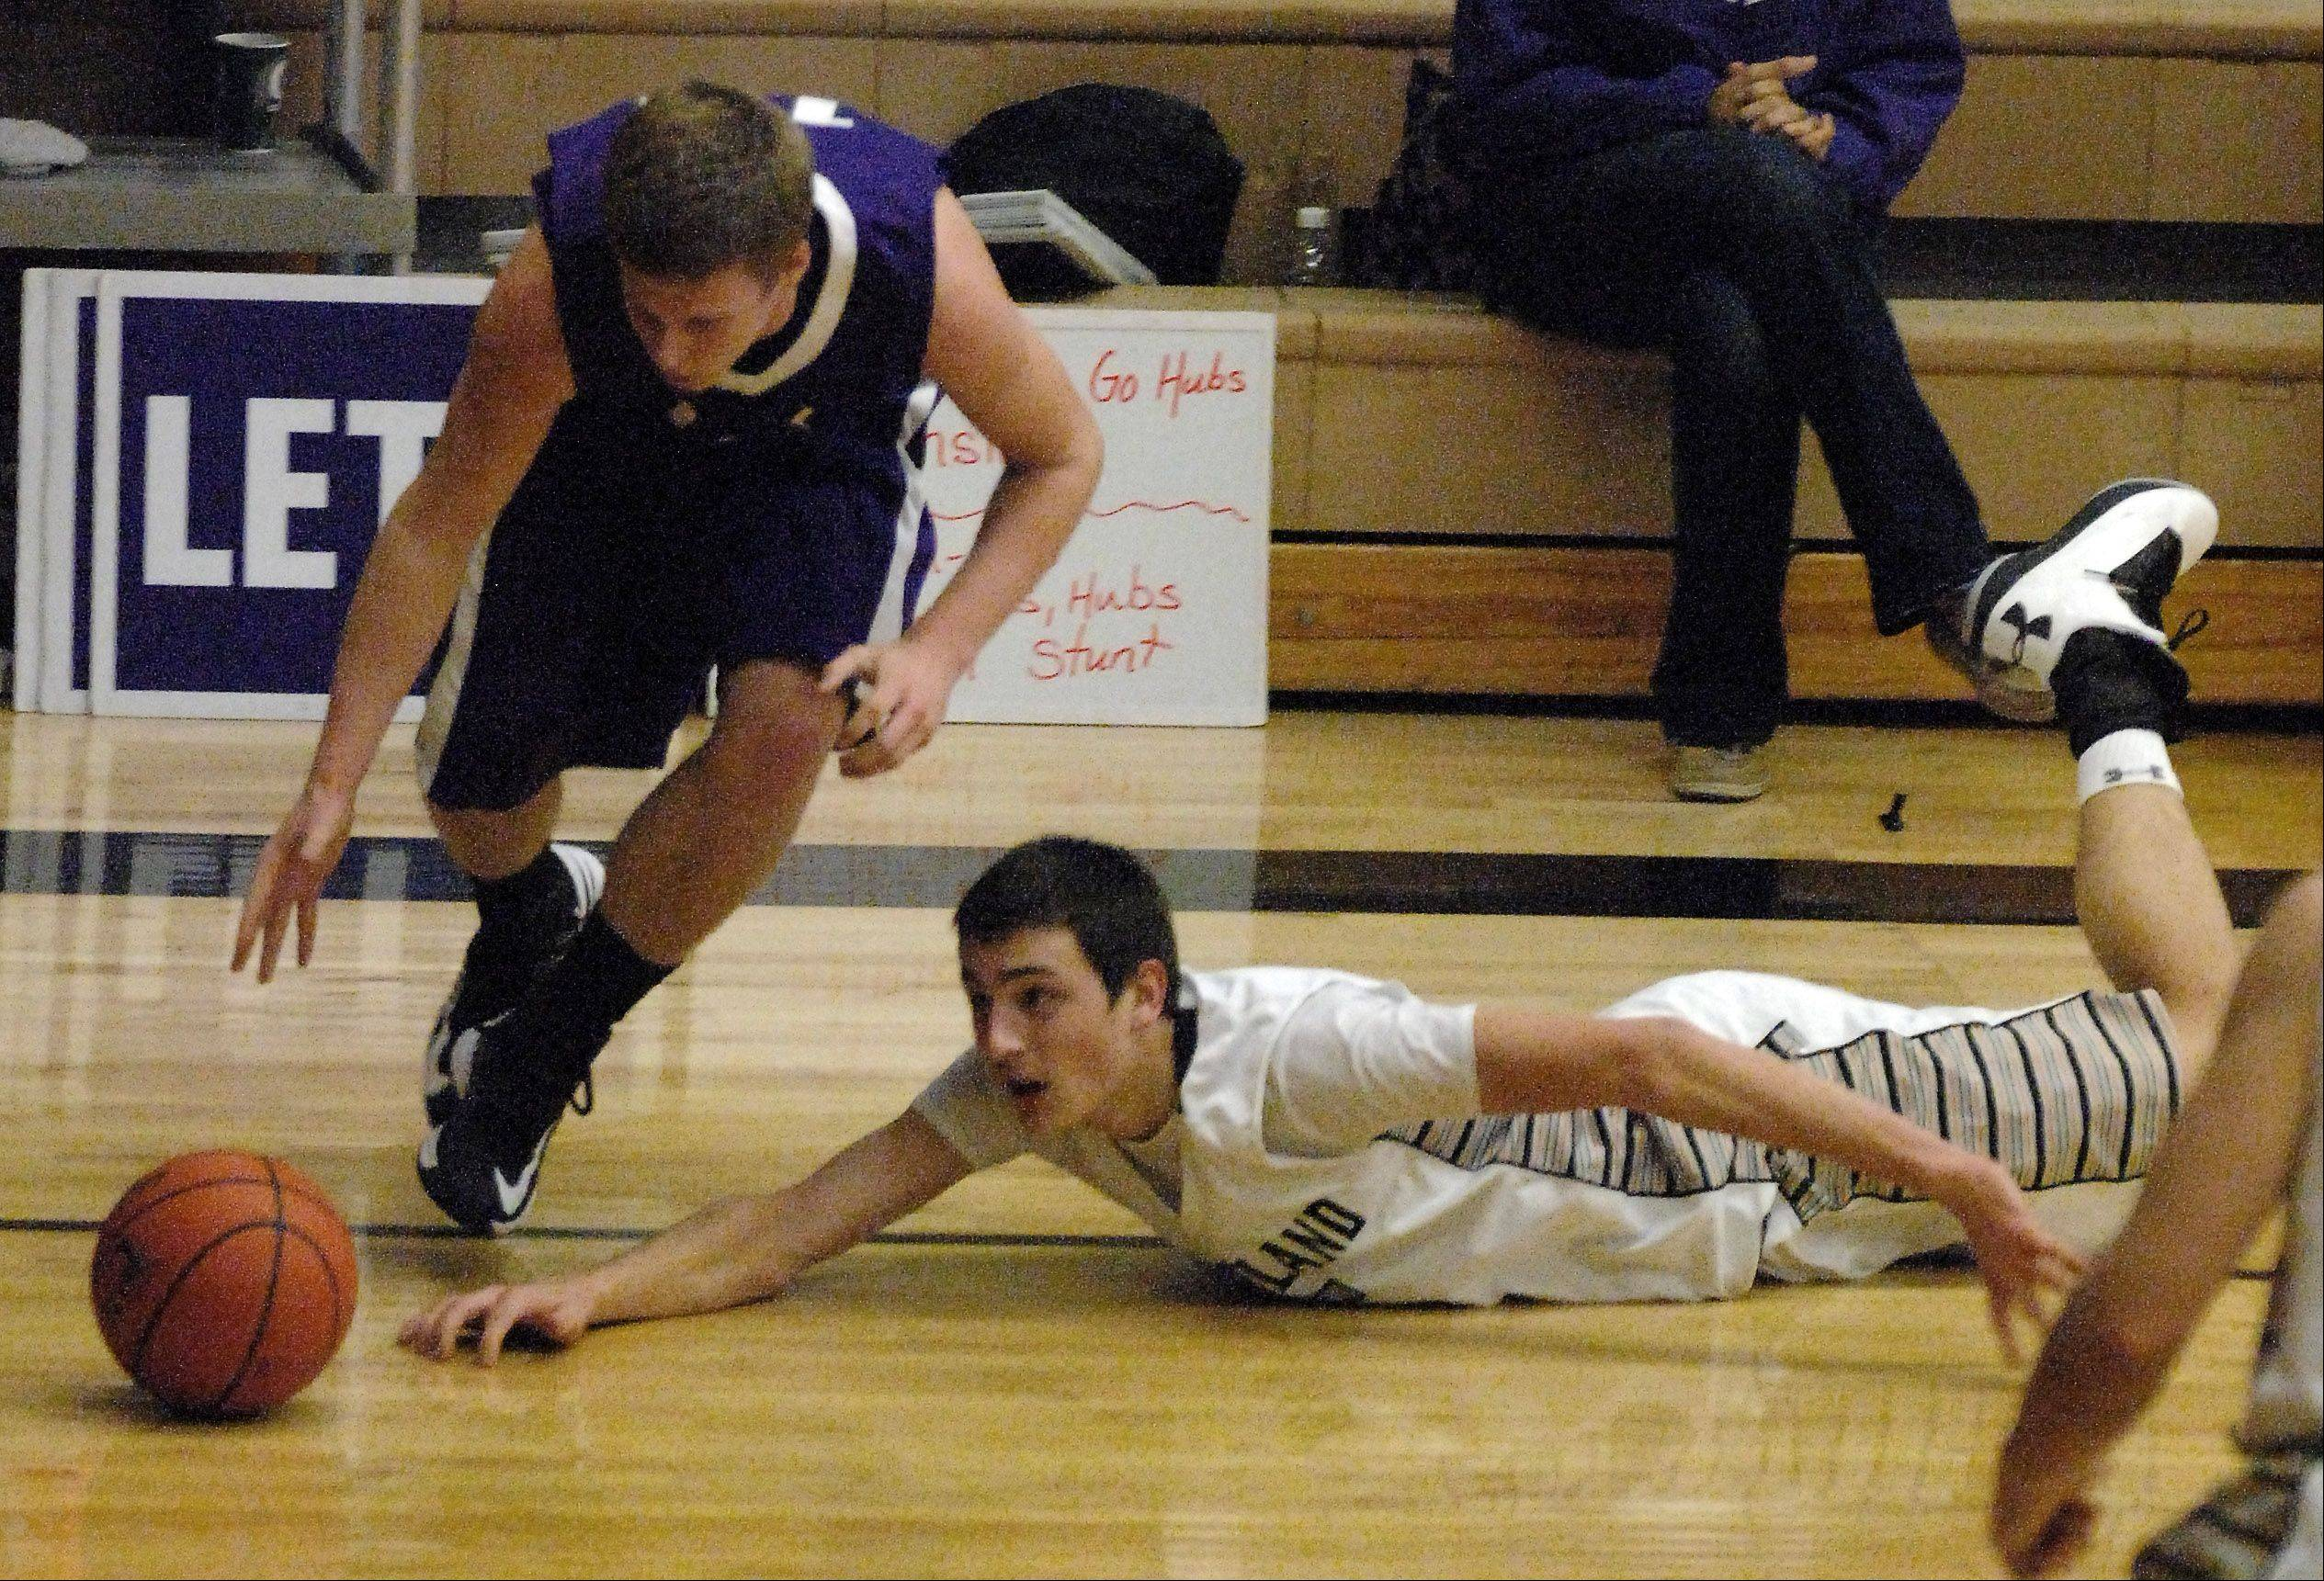 Kaneland's John Pruett dives for a loose ball .